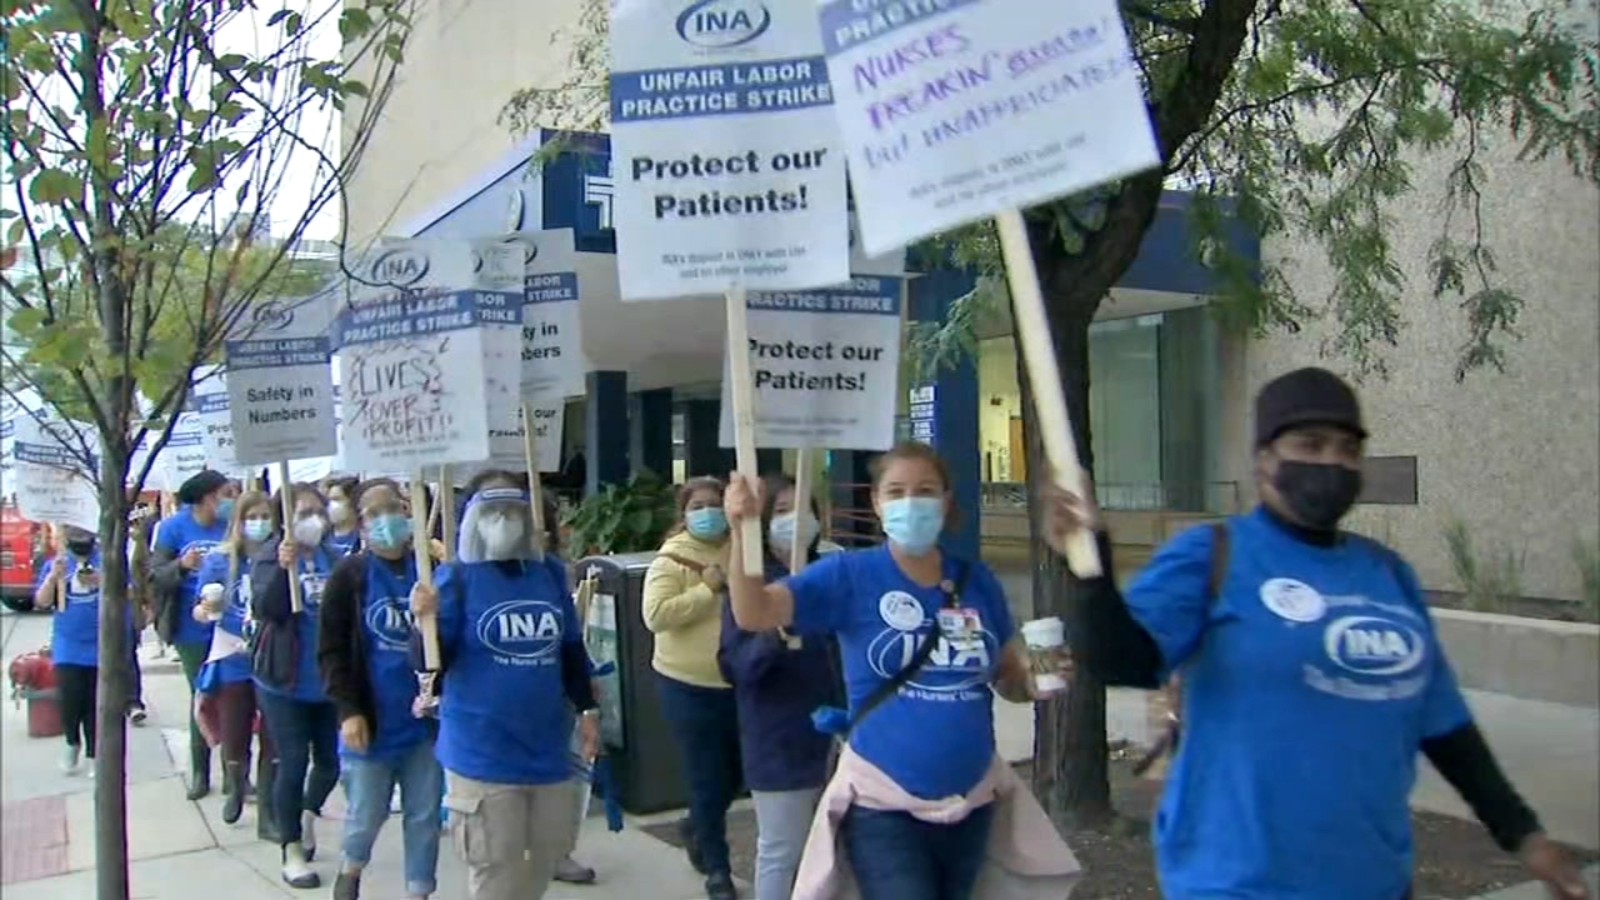 Nurses strike enters 2nd day after more than 800 walk off job at University of Illinois Hospital in Chicago